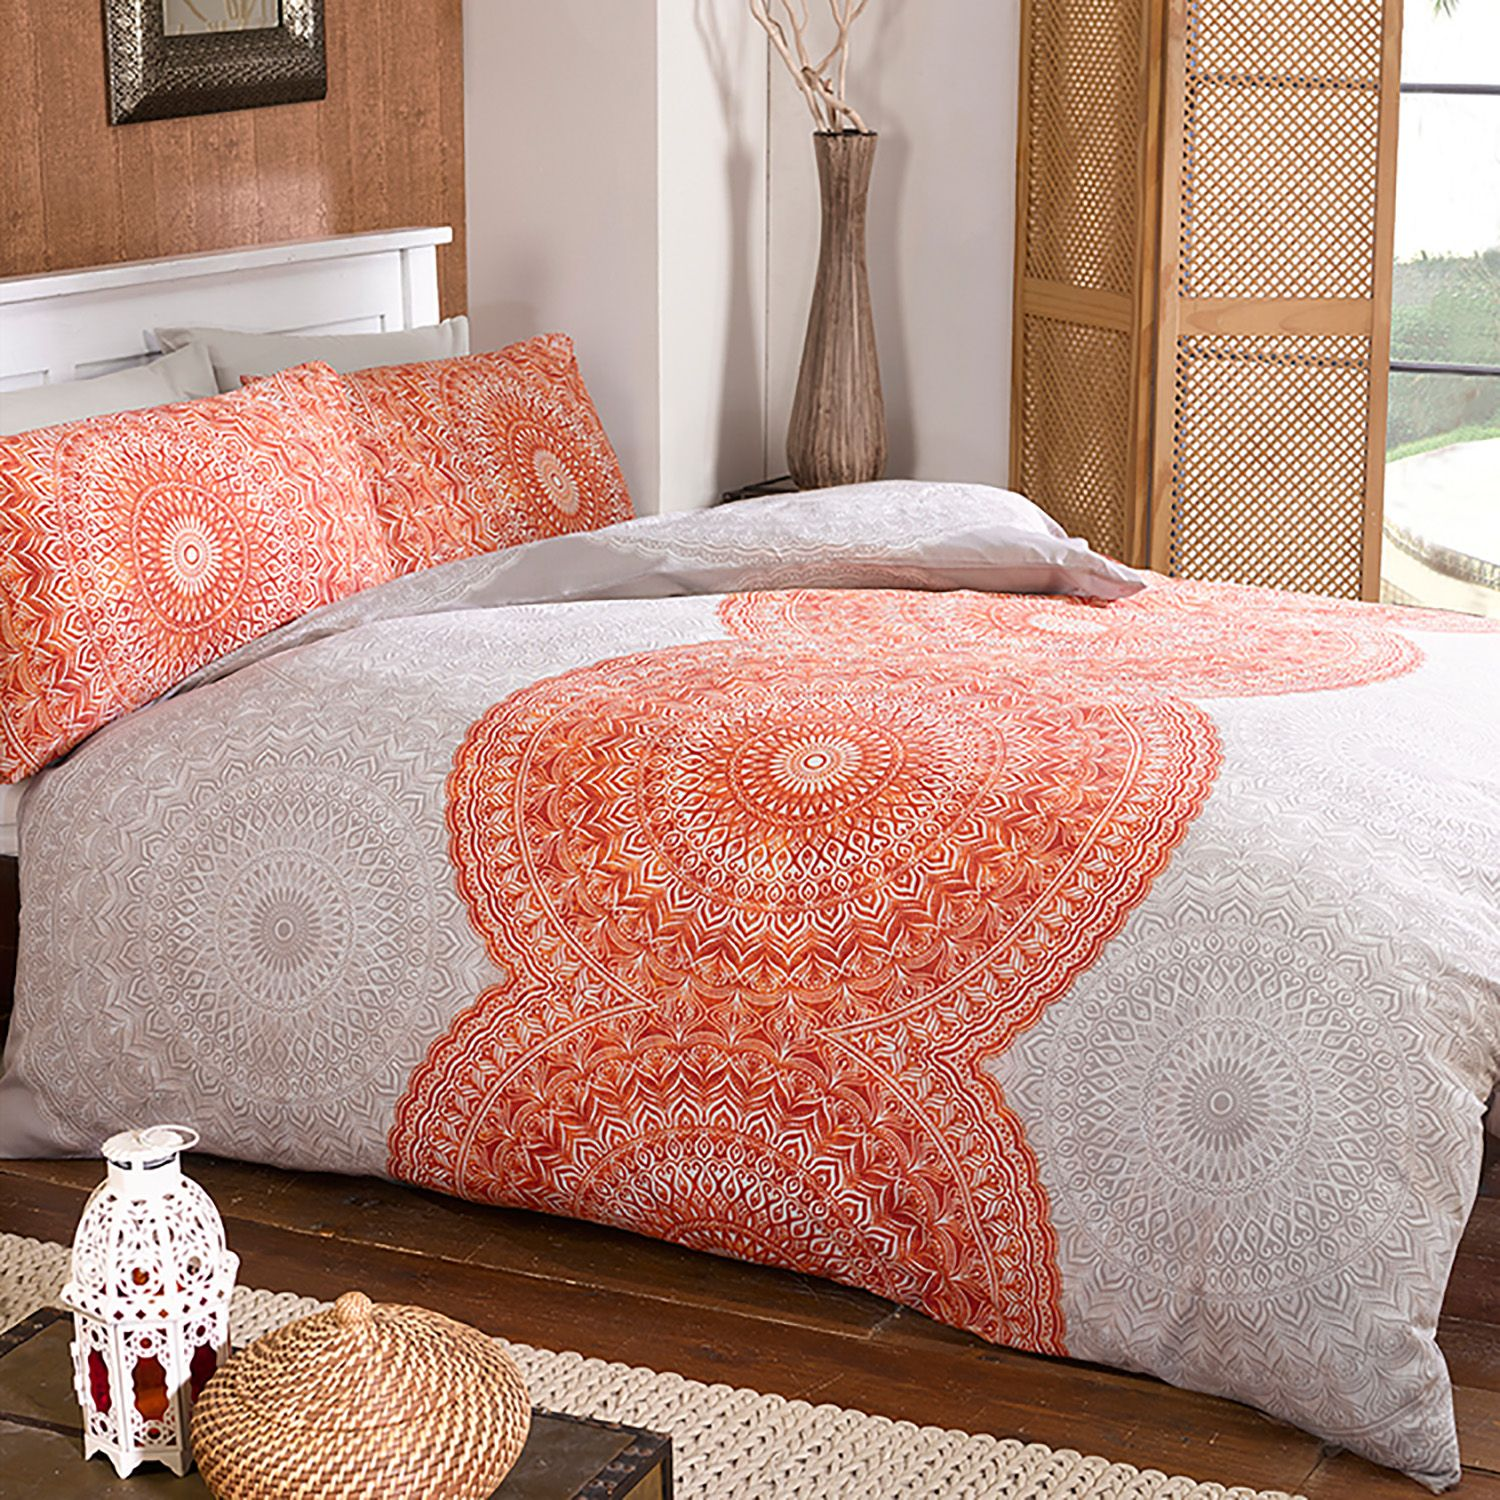 set quilt sets pie piece home orange topanga fashions greenland cotton rich floral topangaquilt duvet bohemian latest products